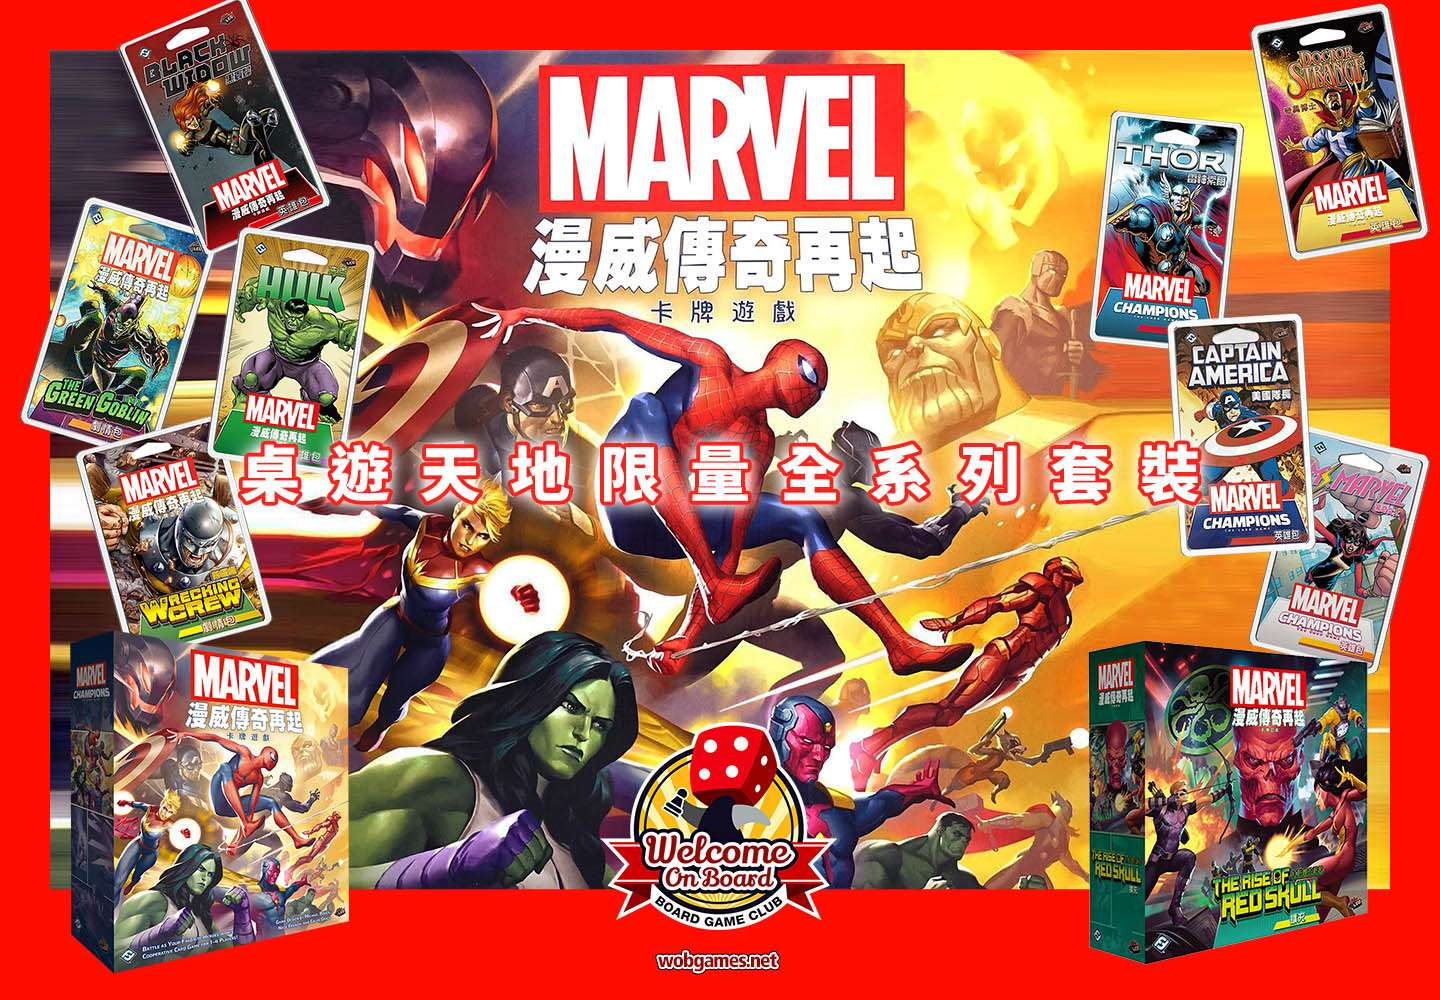 漫威傳奇再起 中文版全套Marvel Champions Set|香港桌遊天地 Welcome on Board Game Club Hong Kong|輕策略卡牌遊戲 Strategy Card Game